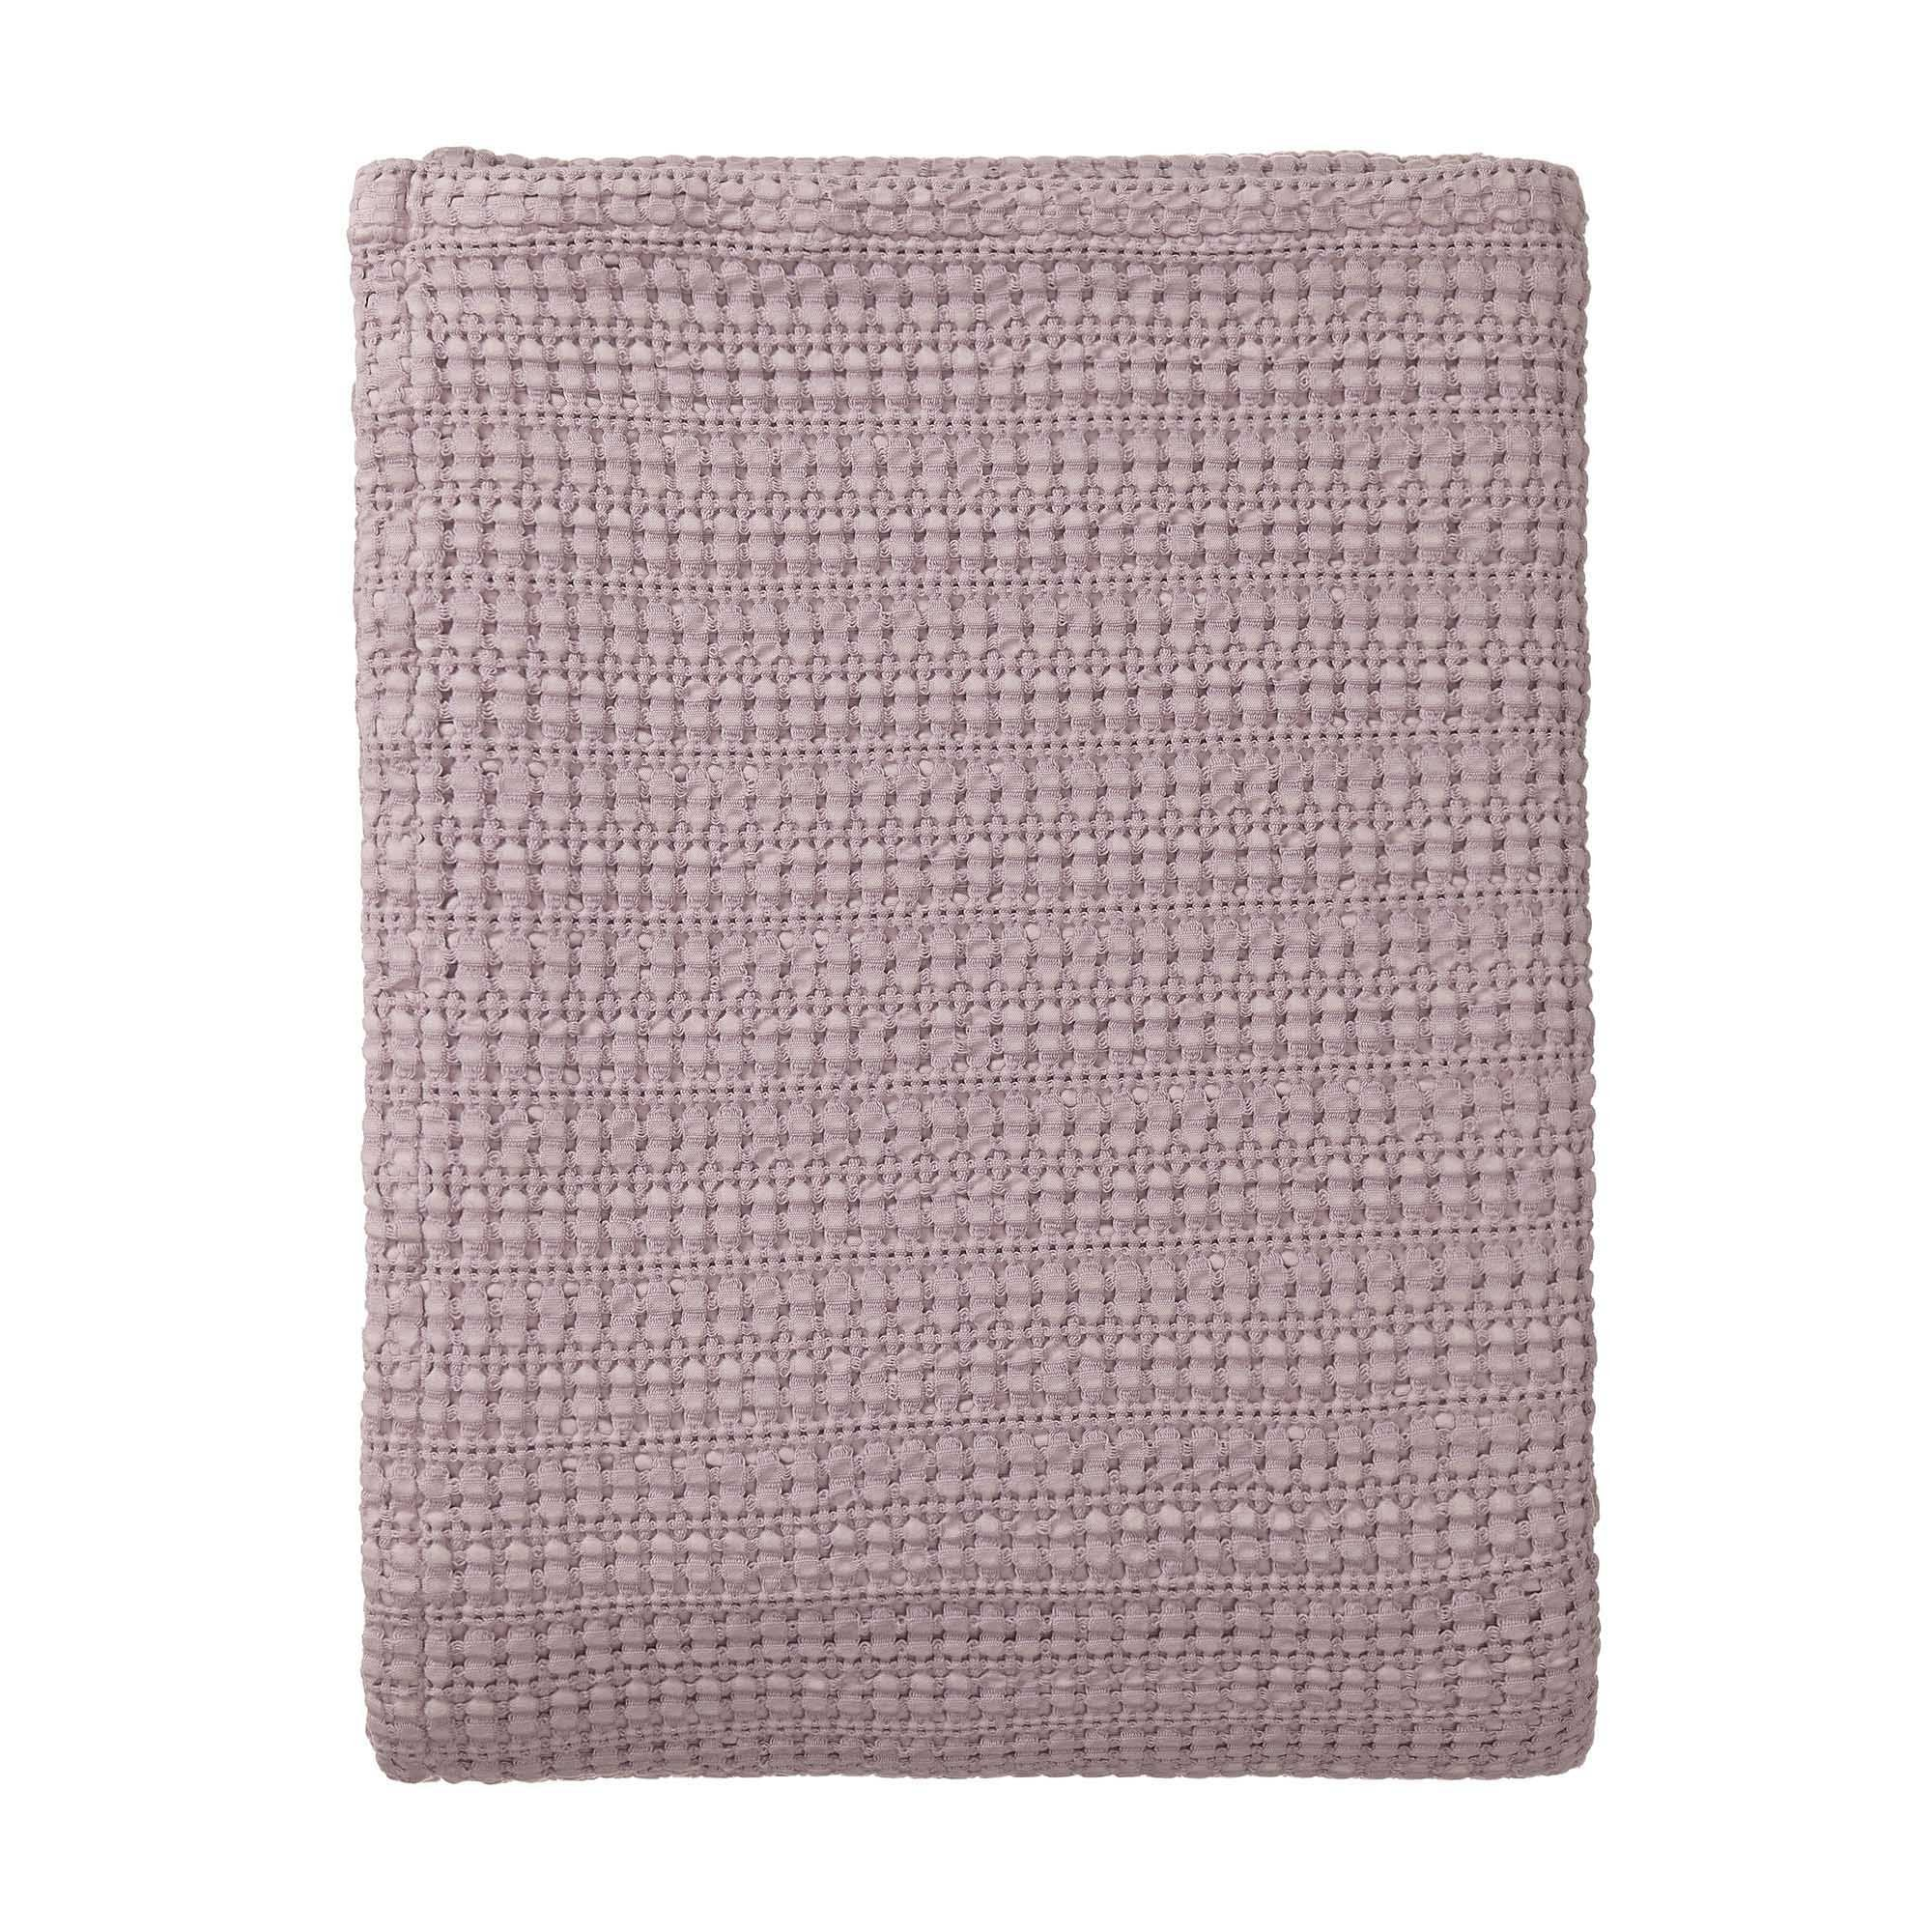 Anadia Throw [Light mauve]